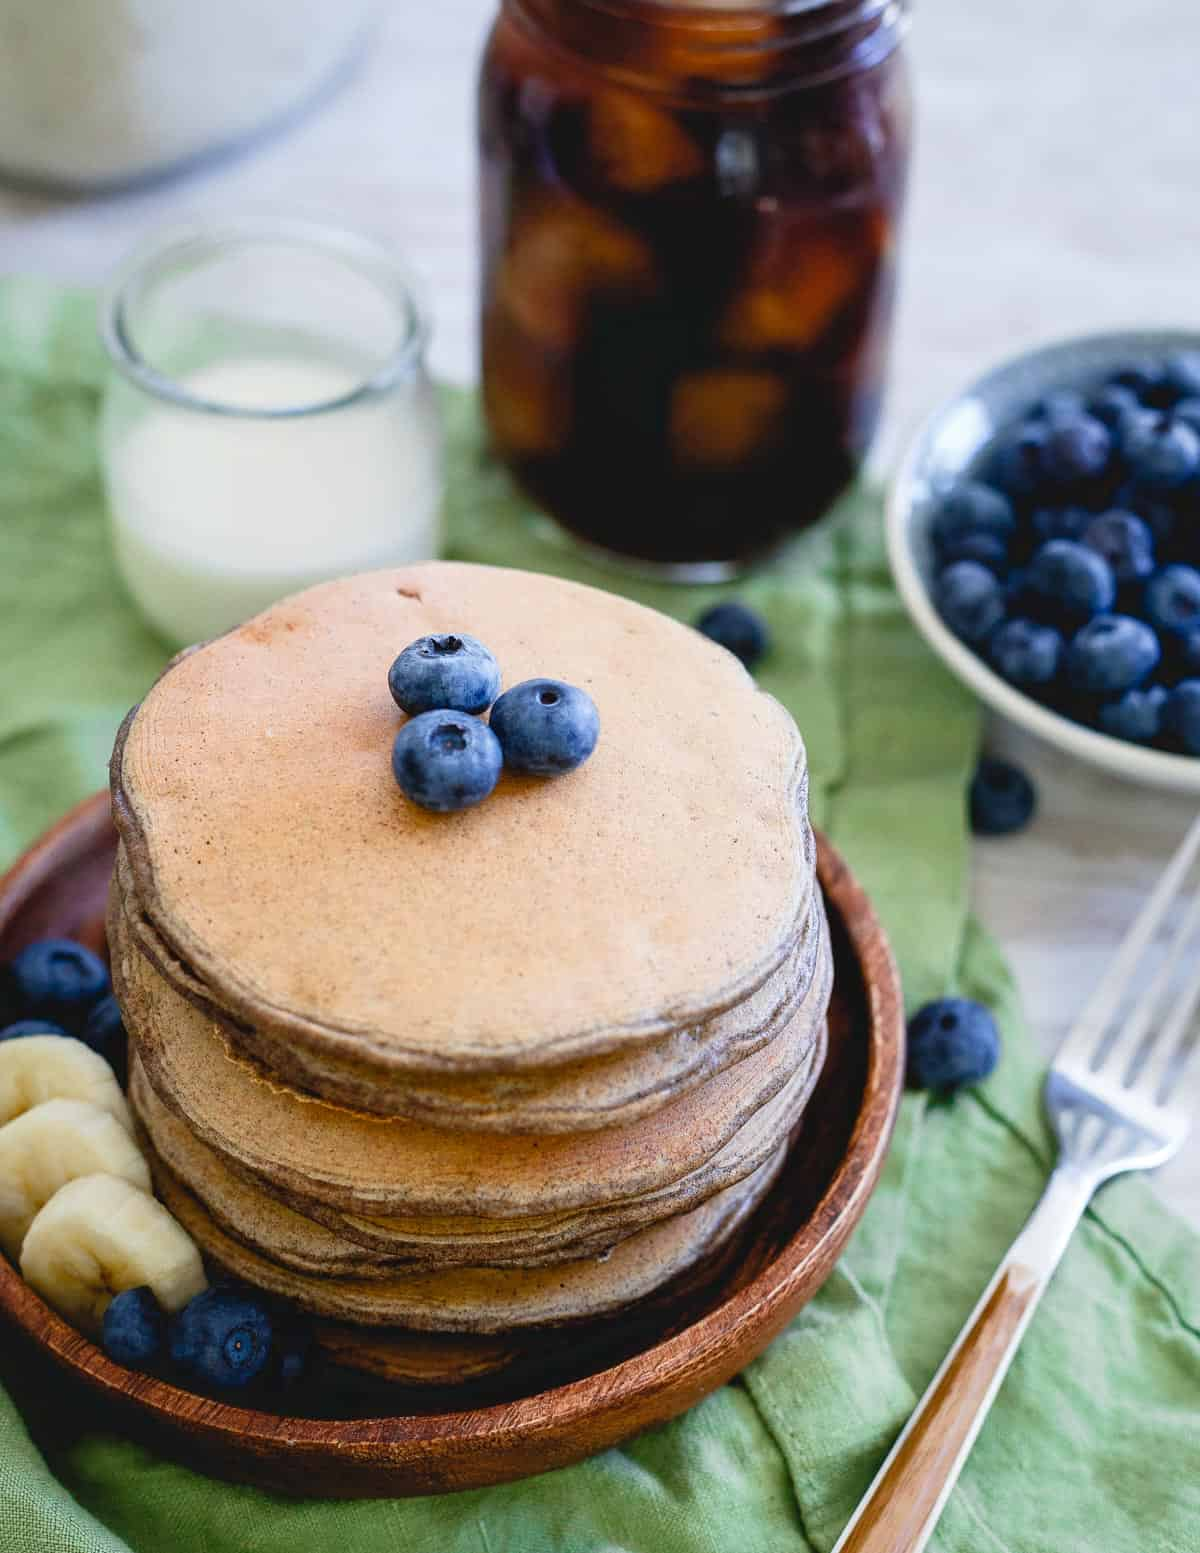 Packed with 30g of protein, these pancakes are the perfect stack to start your day.